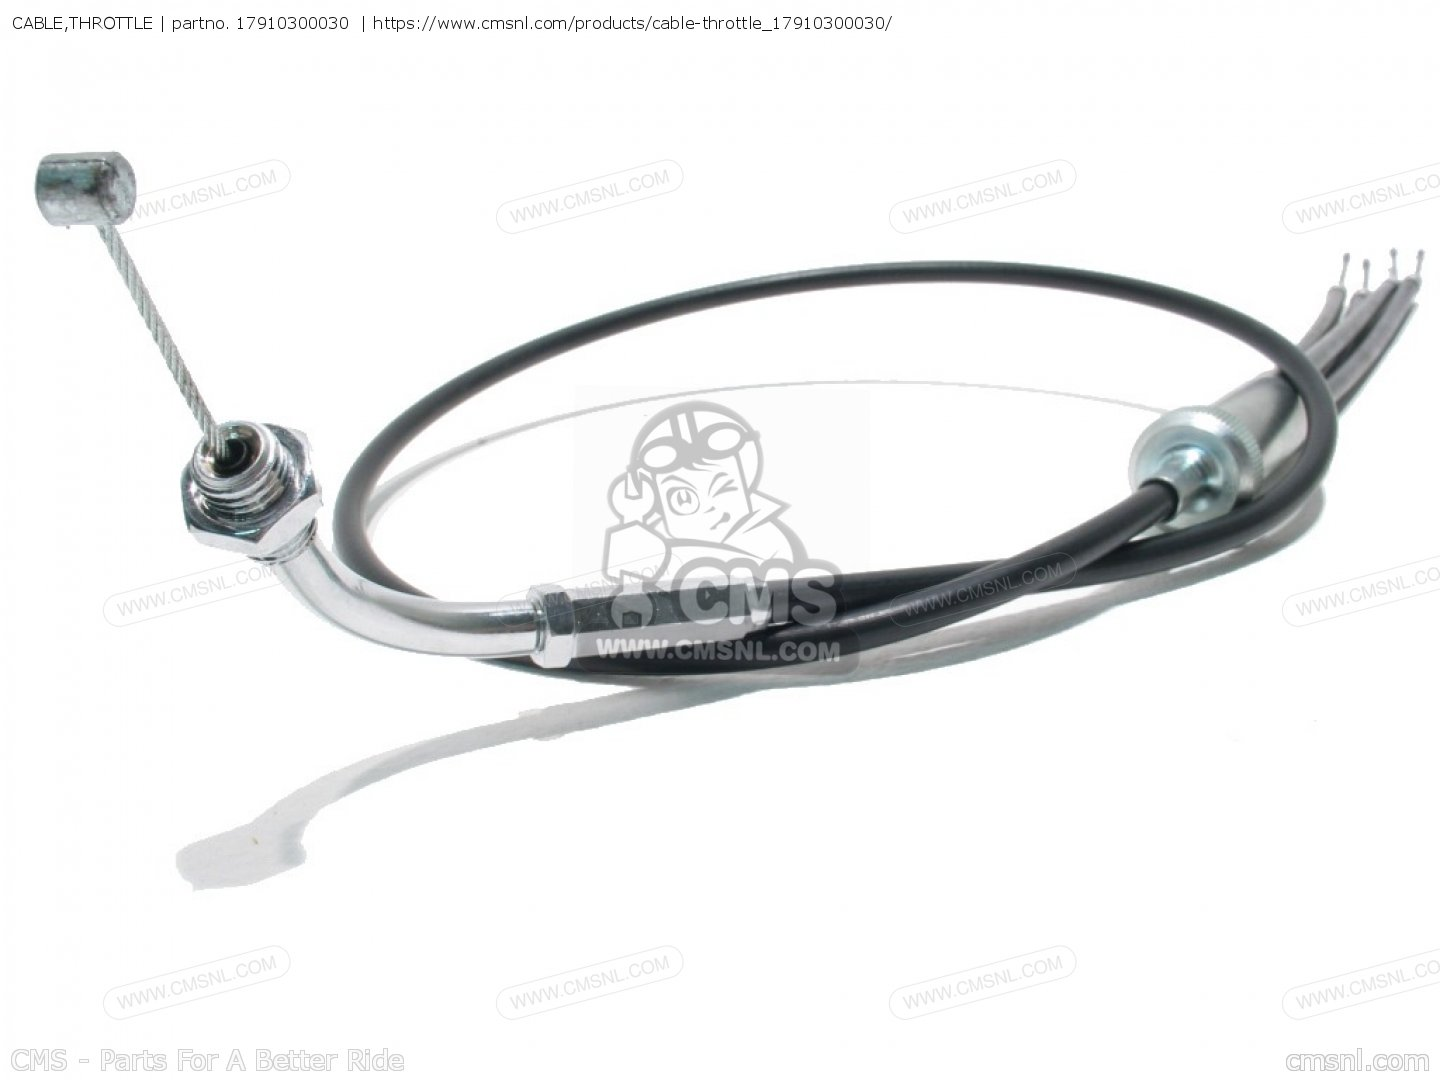 17910300030 cable throttle honda